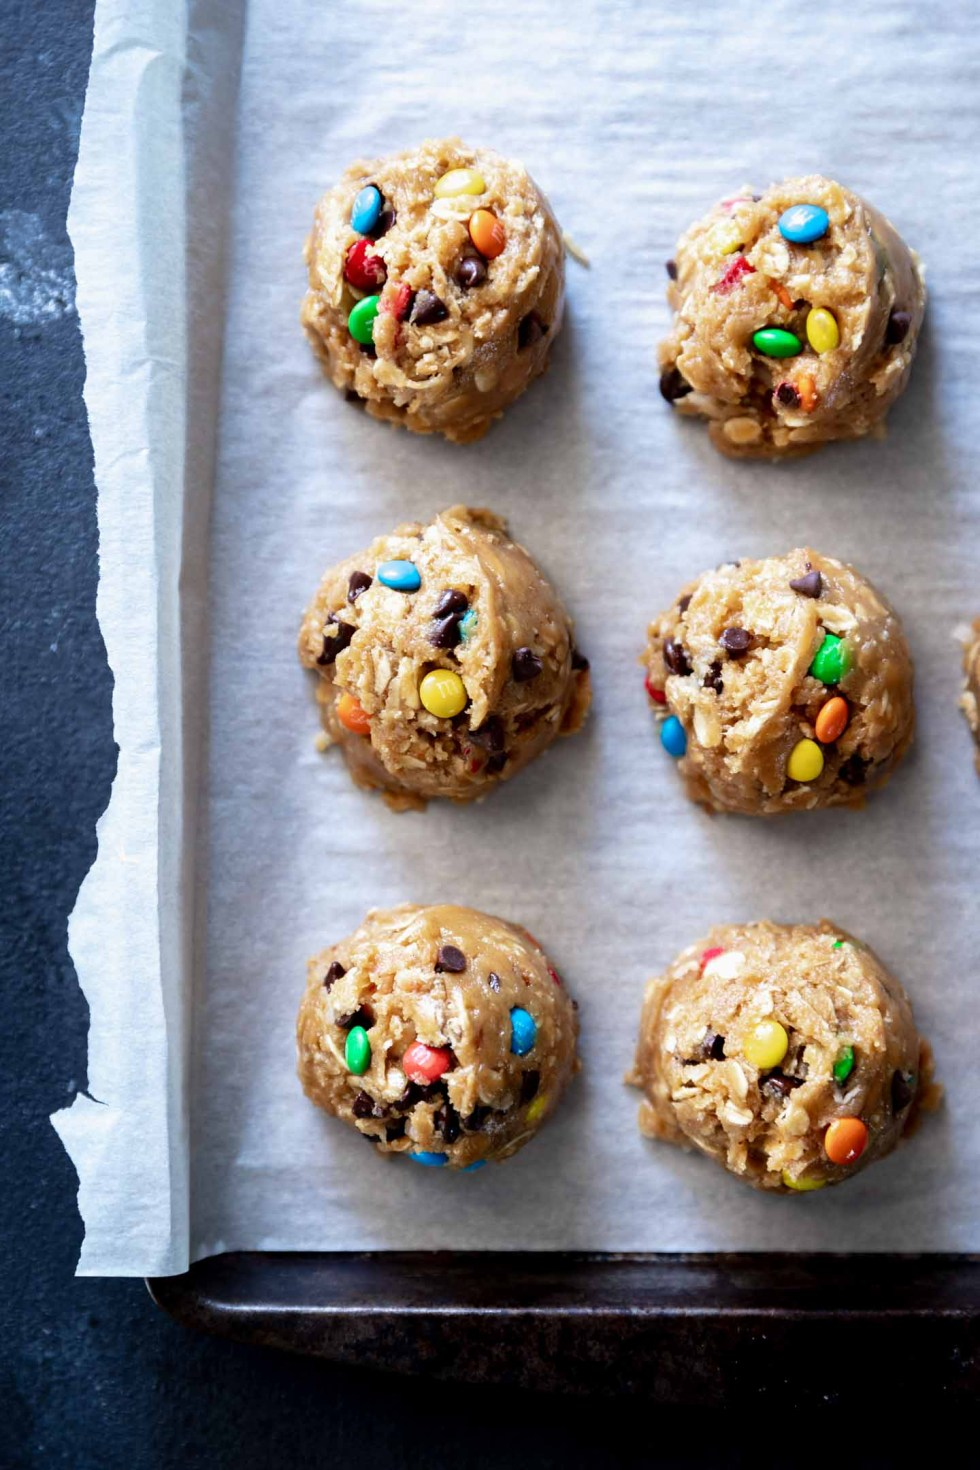 Cookie dough balls side-by-side